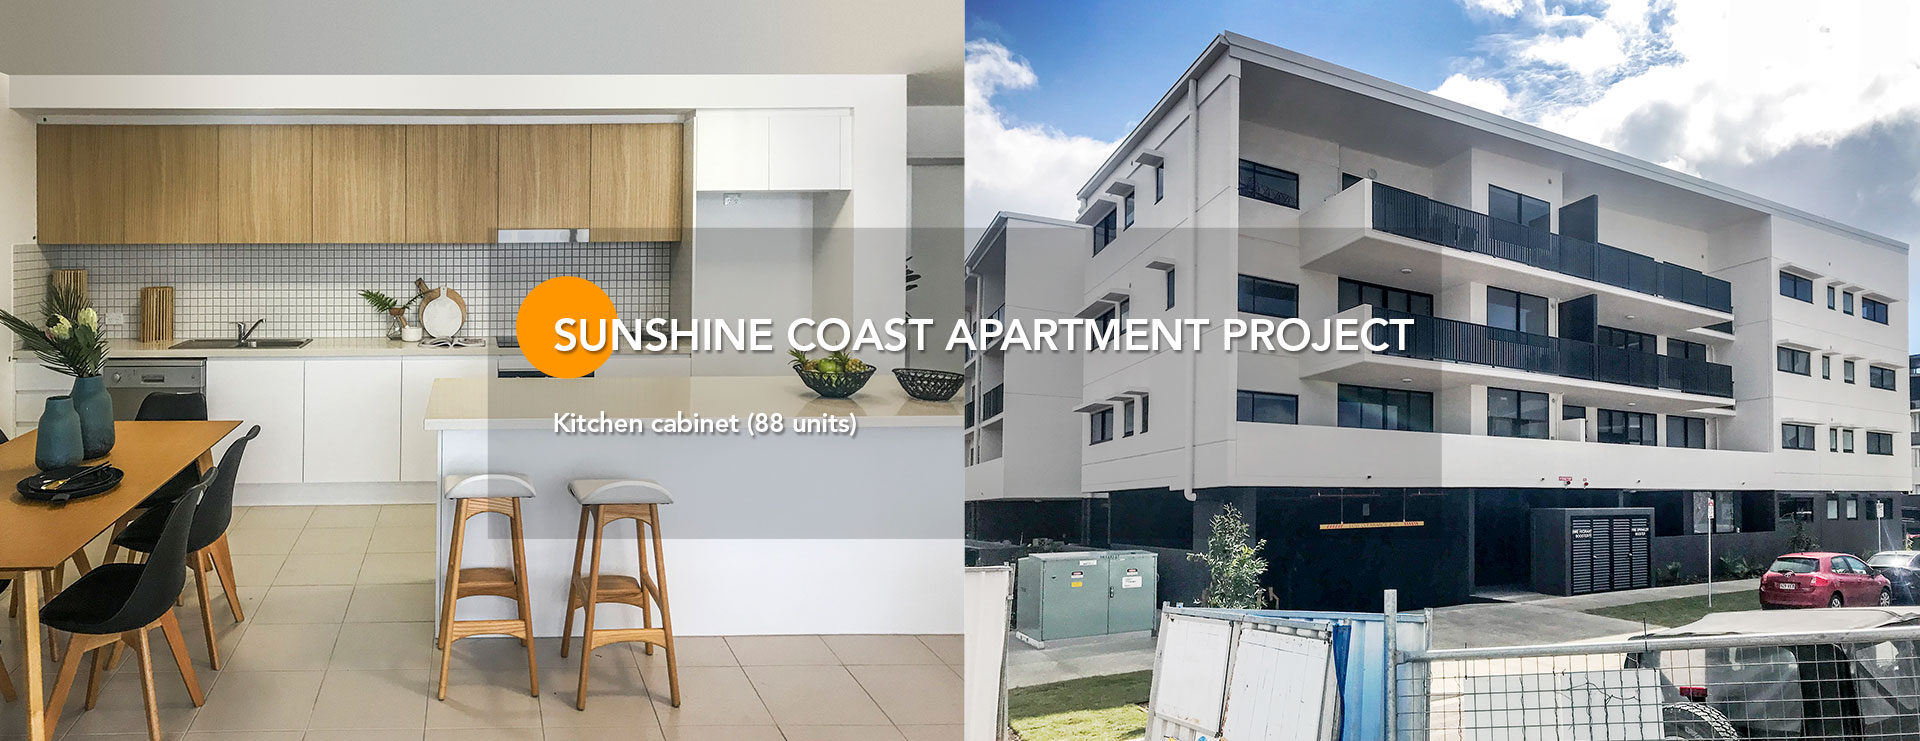 Australia-Sunshine-Coast-Apartment (1)